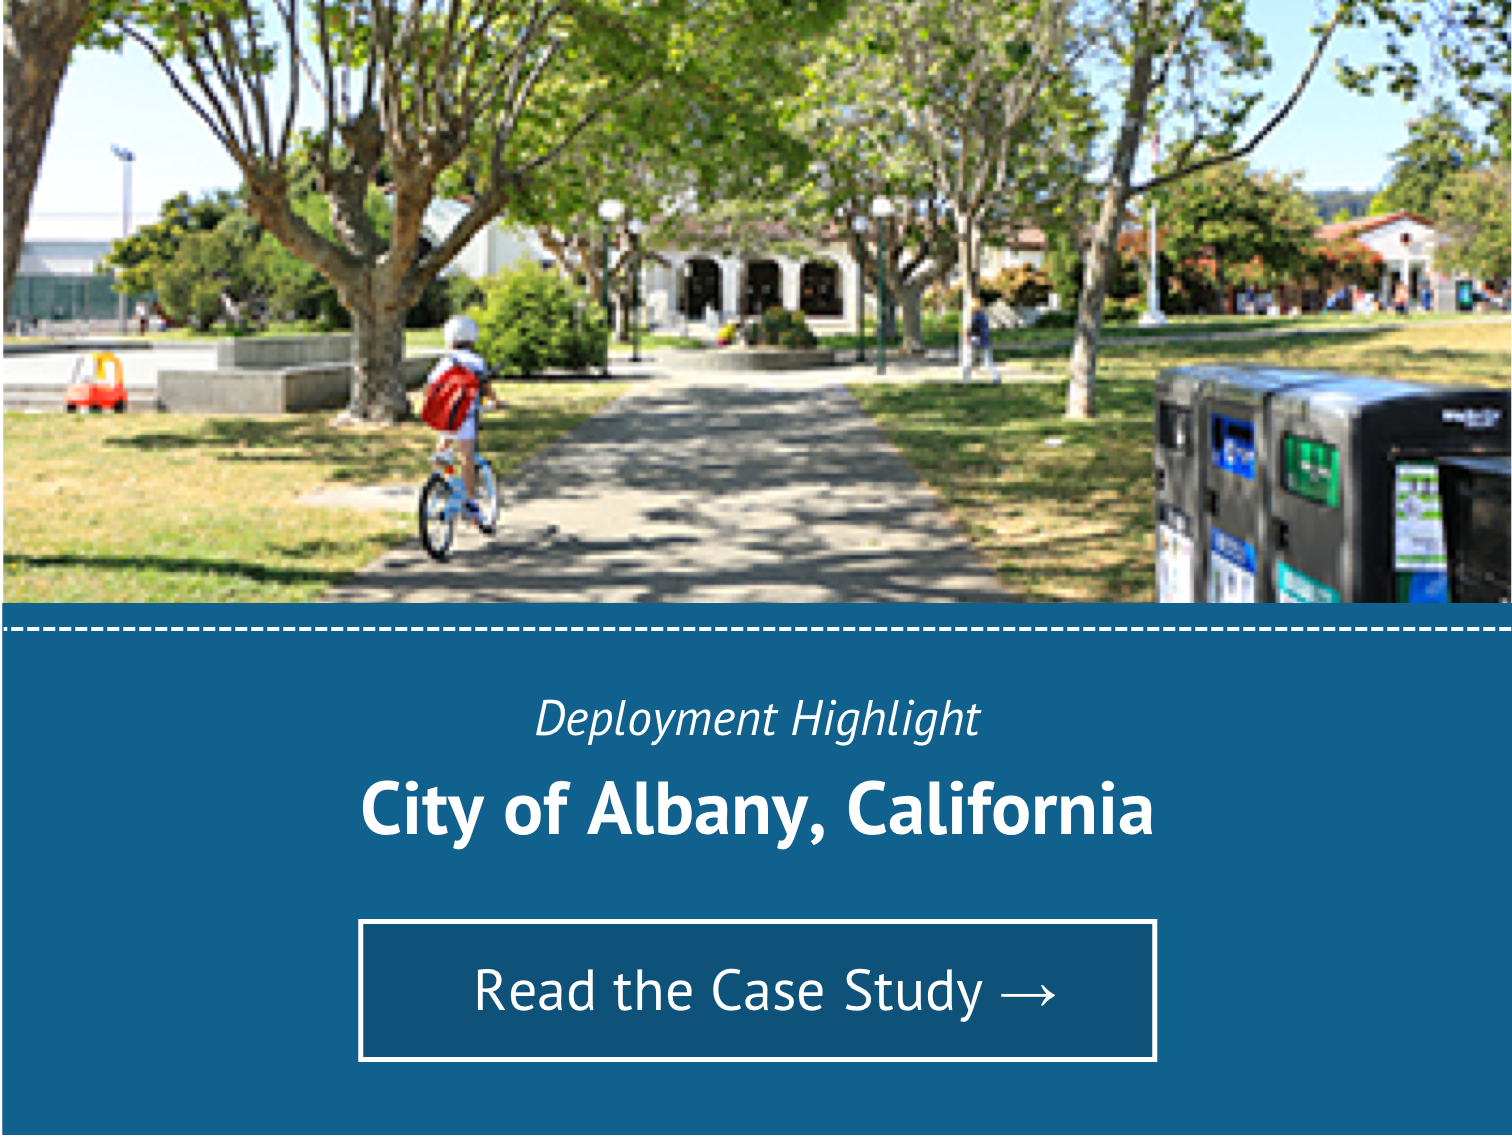 Deployment Highlight for City of Albany, CA - Read the Case Study